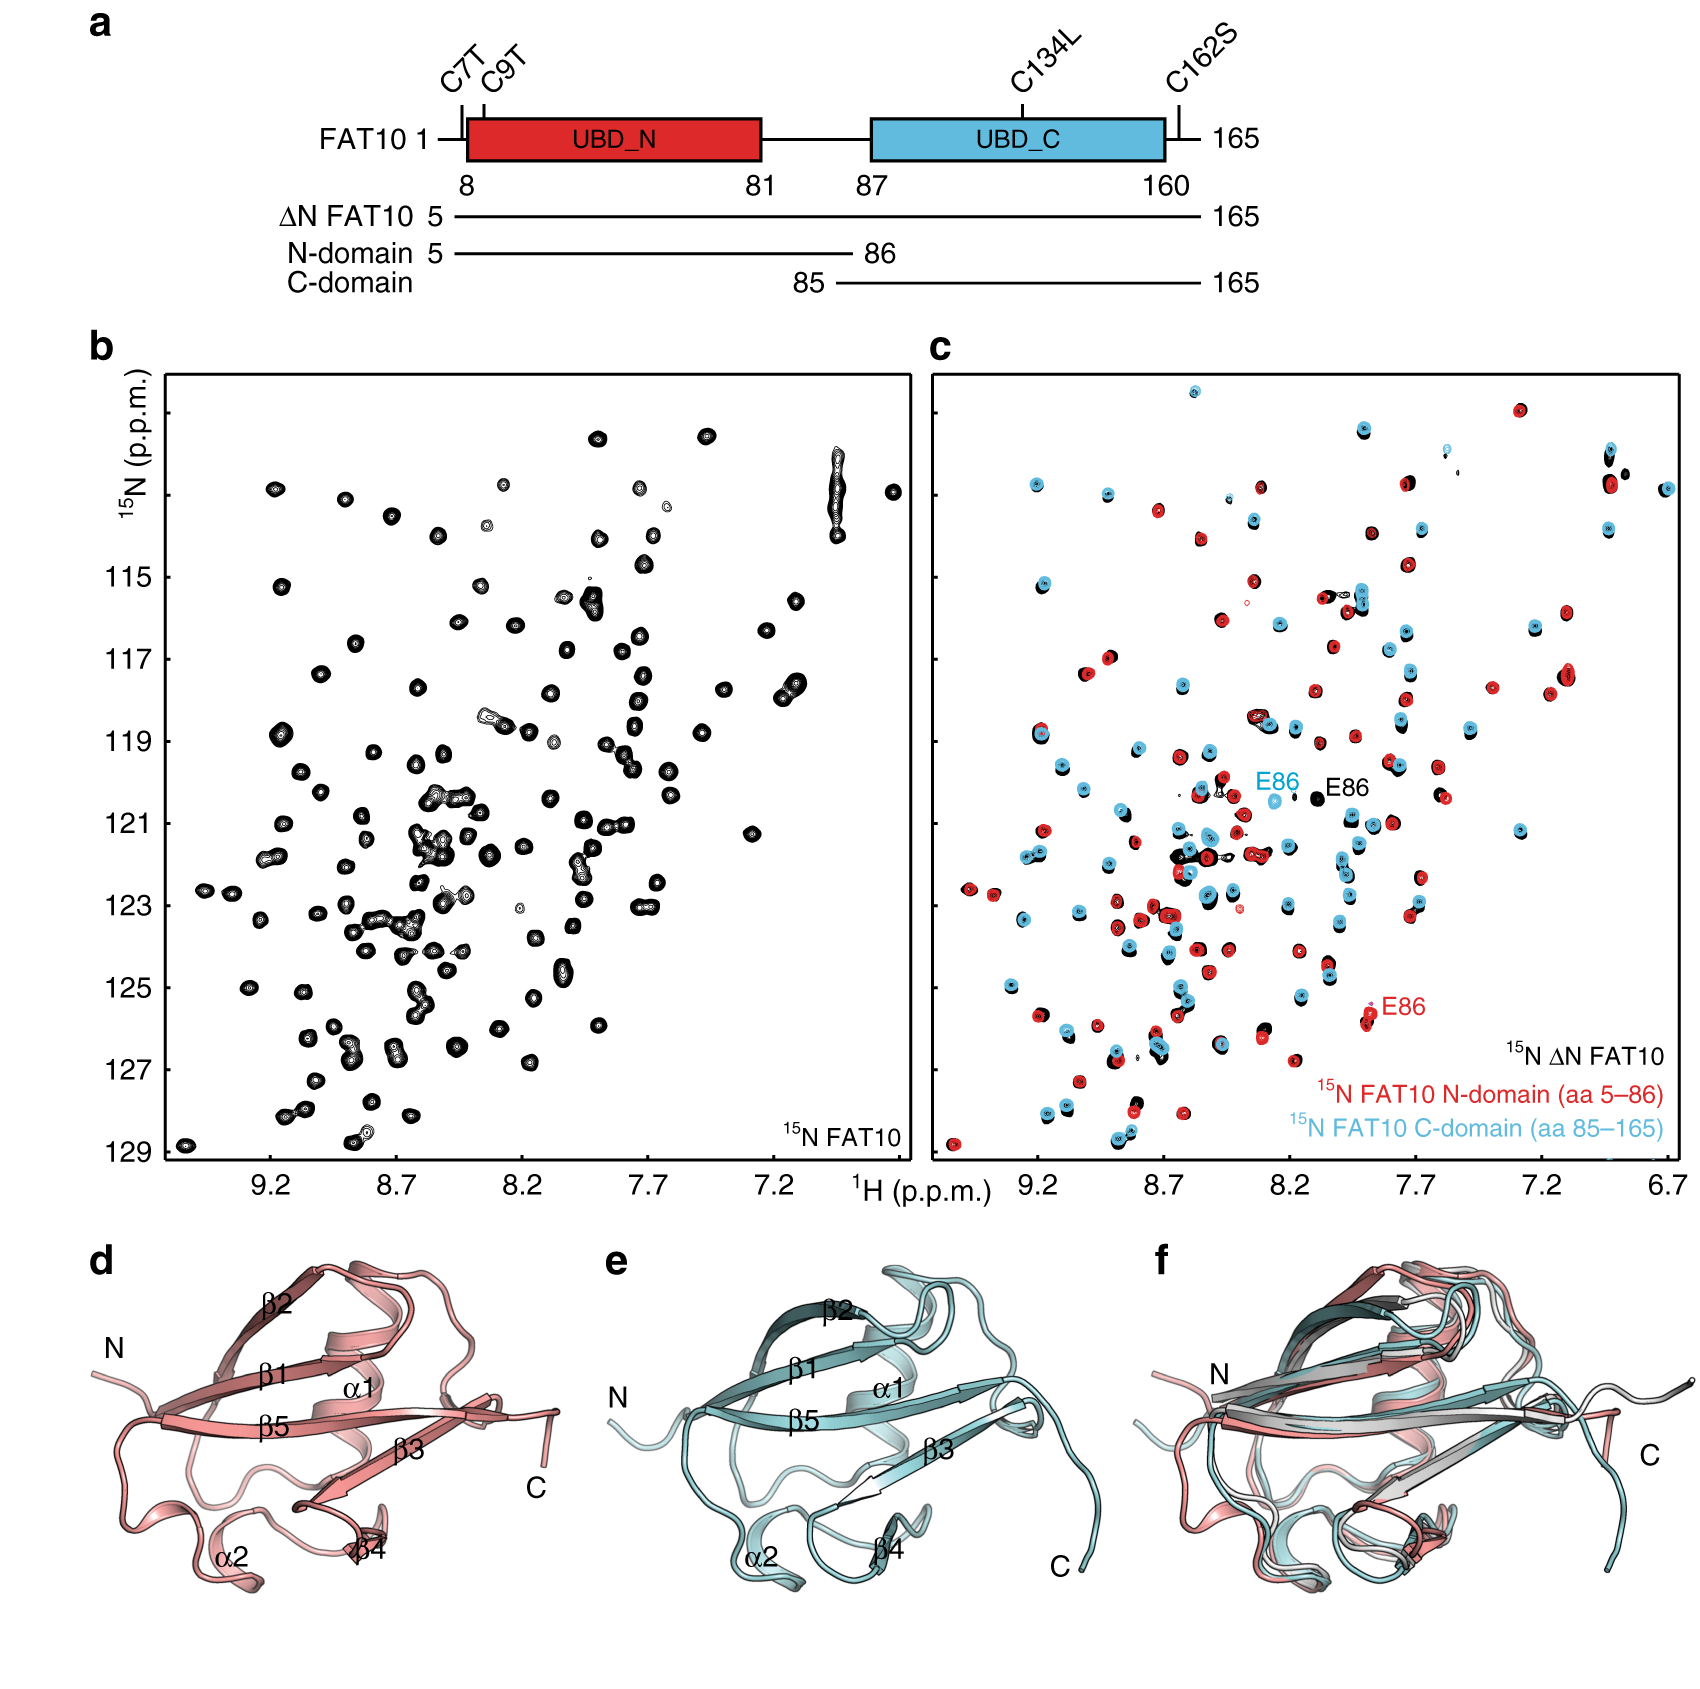 The structure of the ubiquitin-like modifier FAT10 reveals an